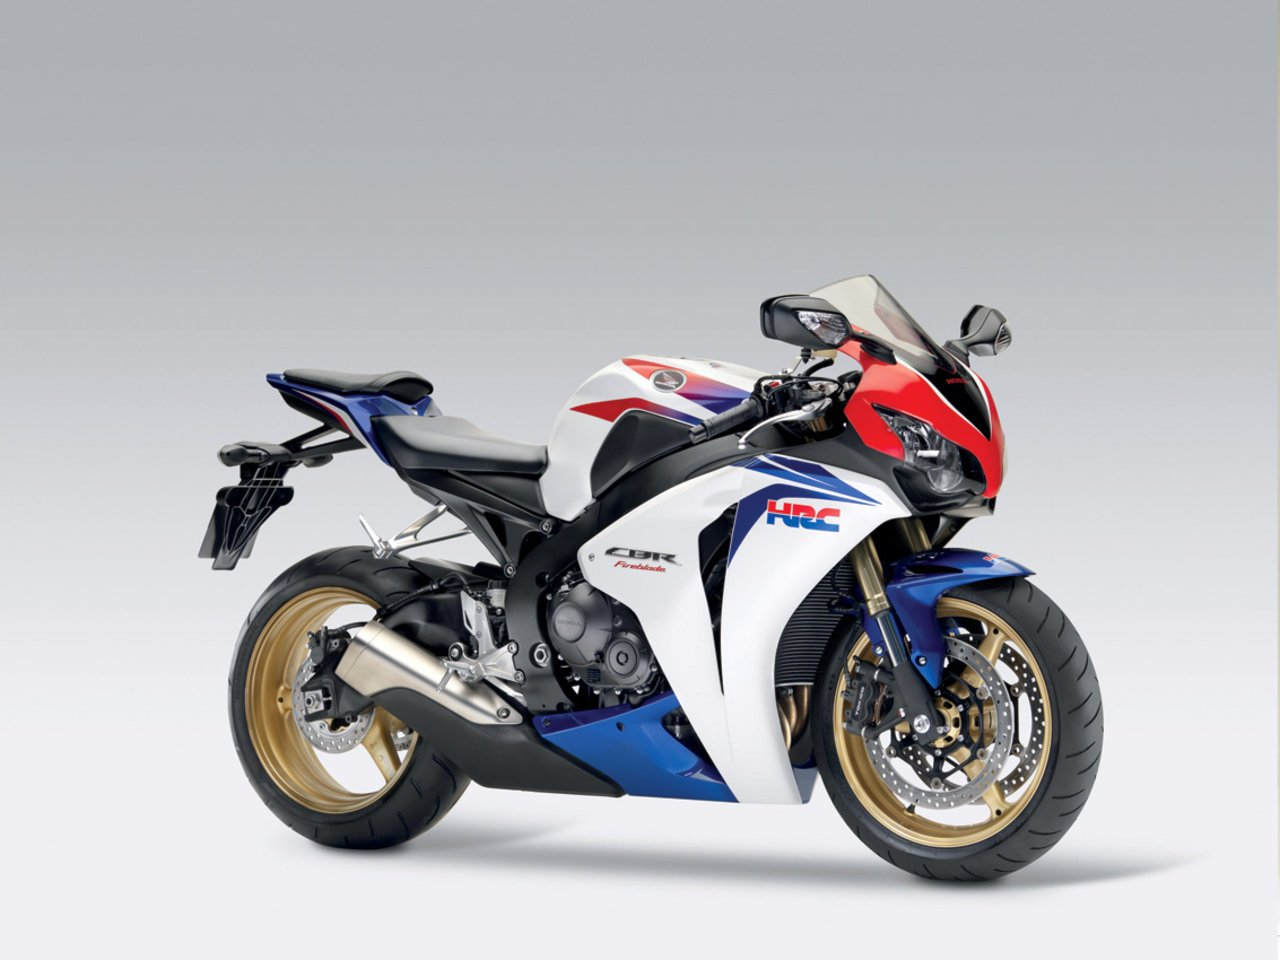 Could any one help me with the color codes for the CBR 1000RR 2009 HRC-2009hrc.jpg